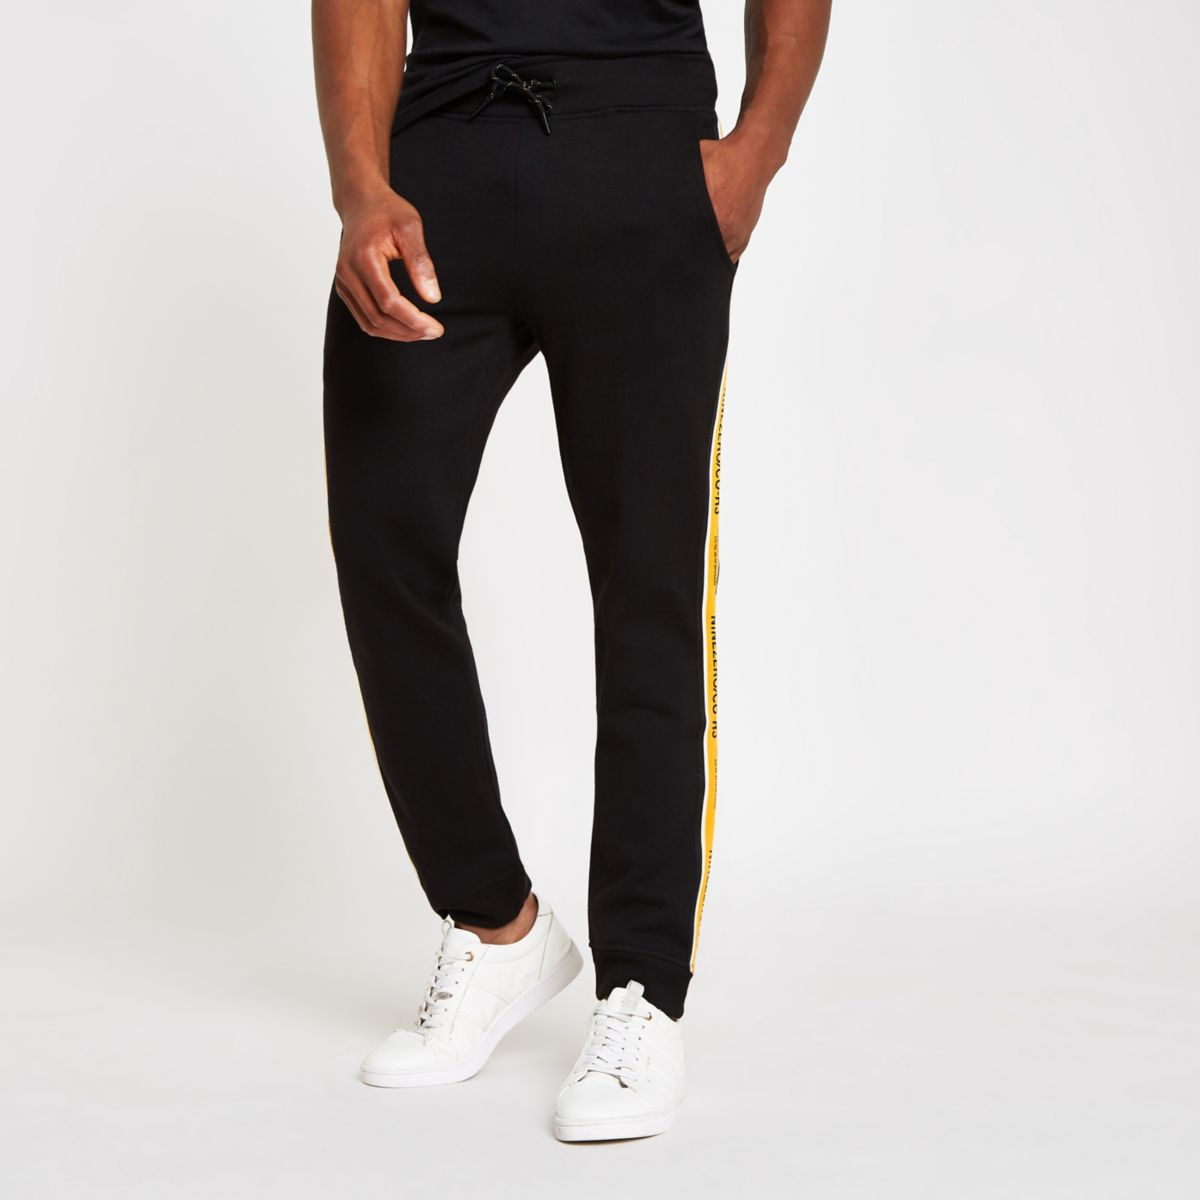 Jack & Jones black tape joggers